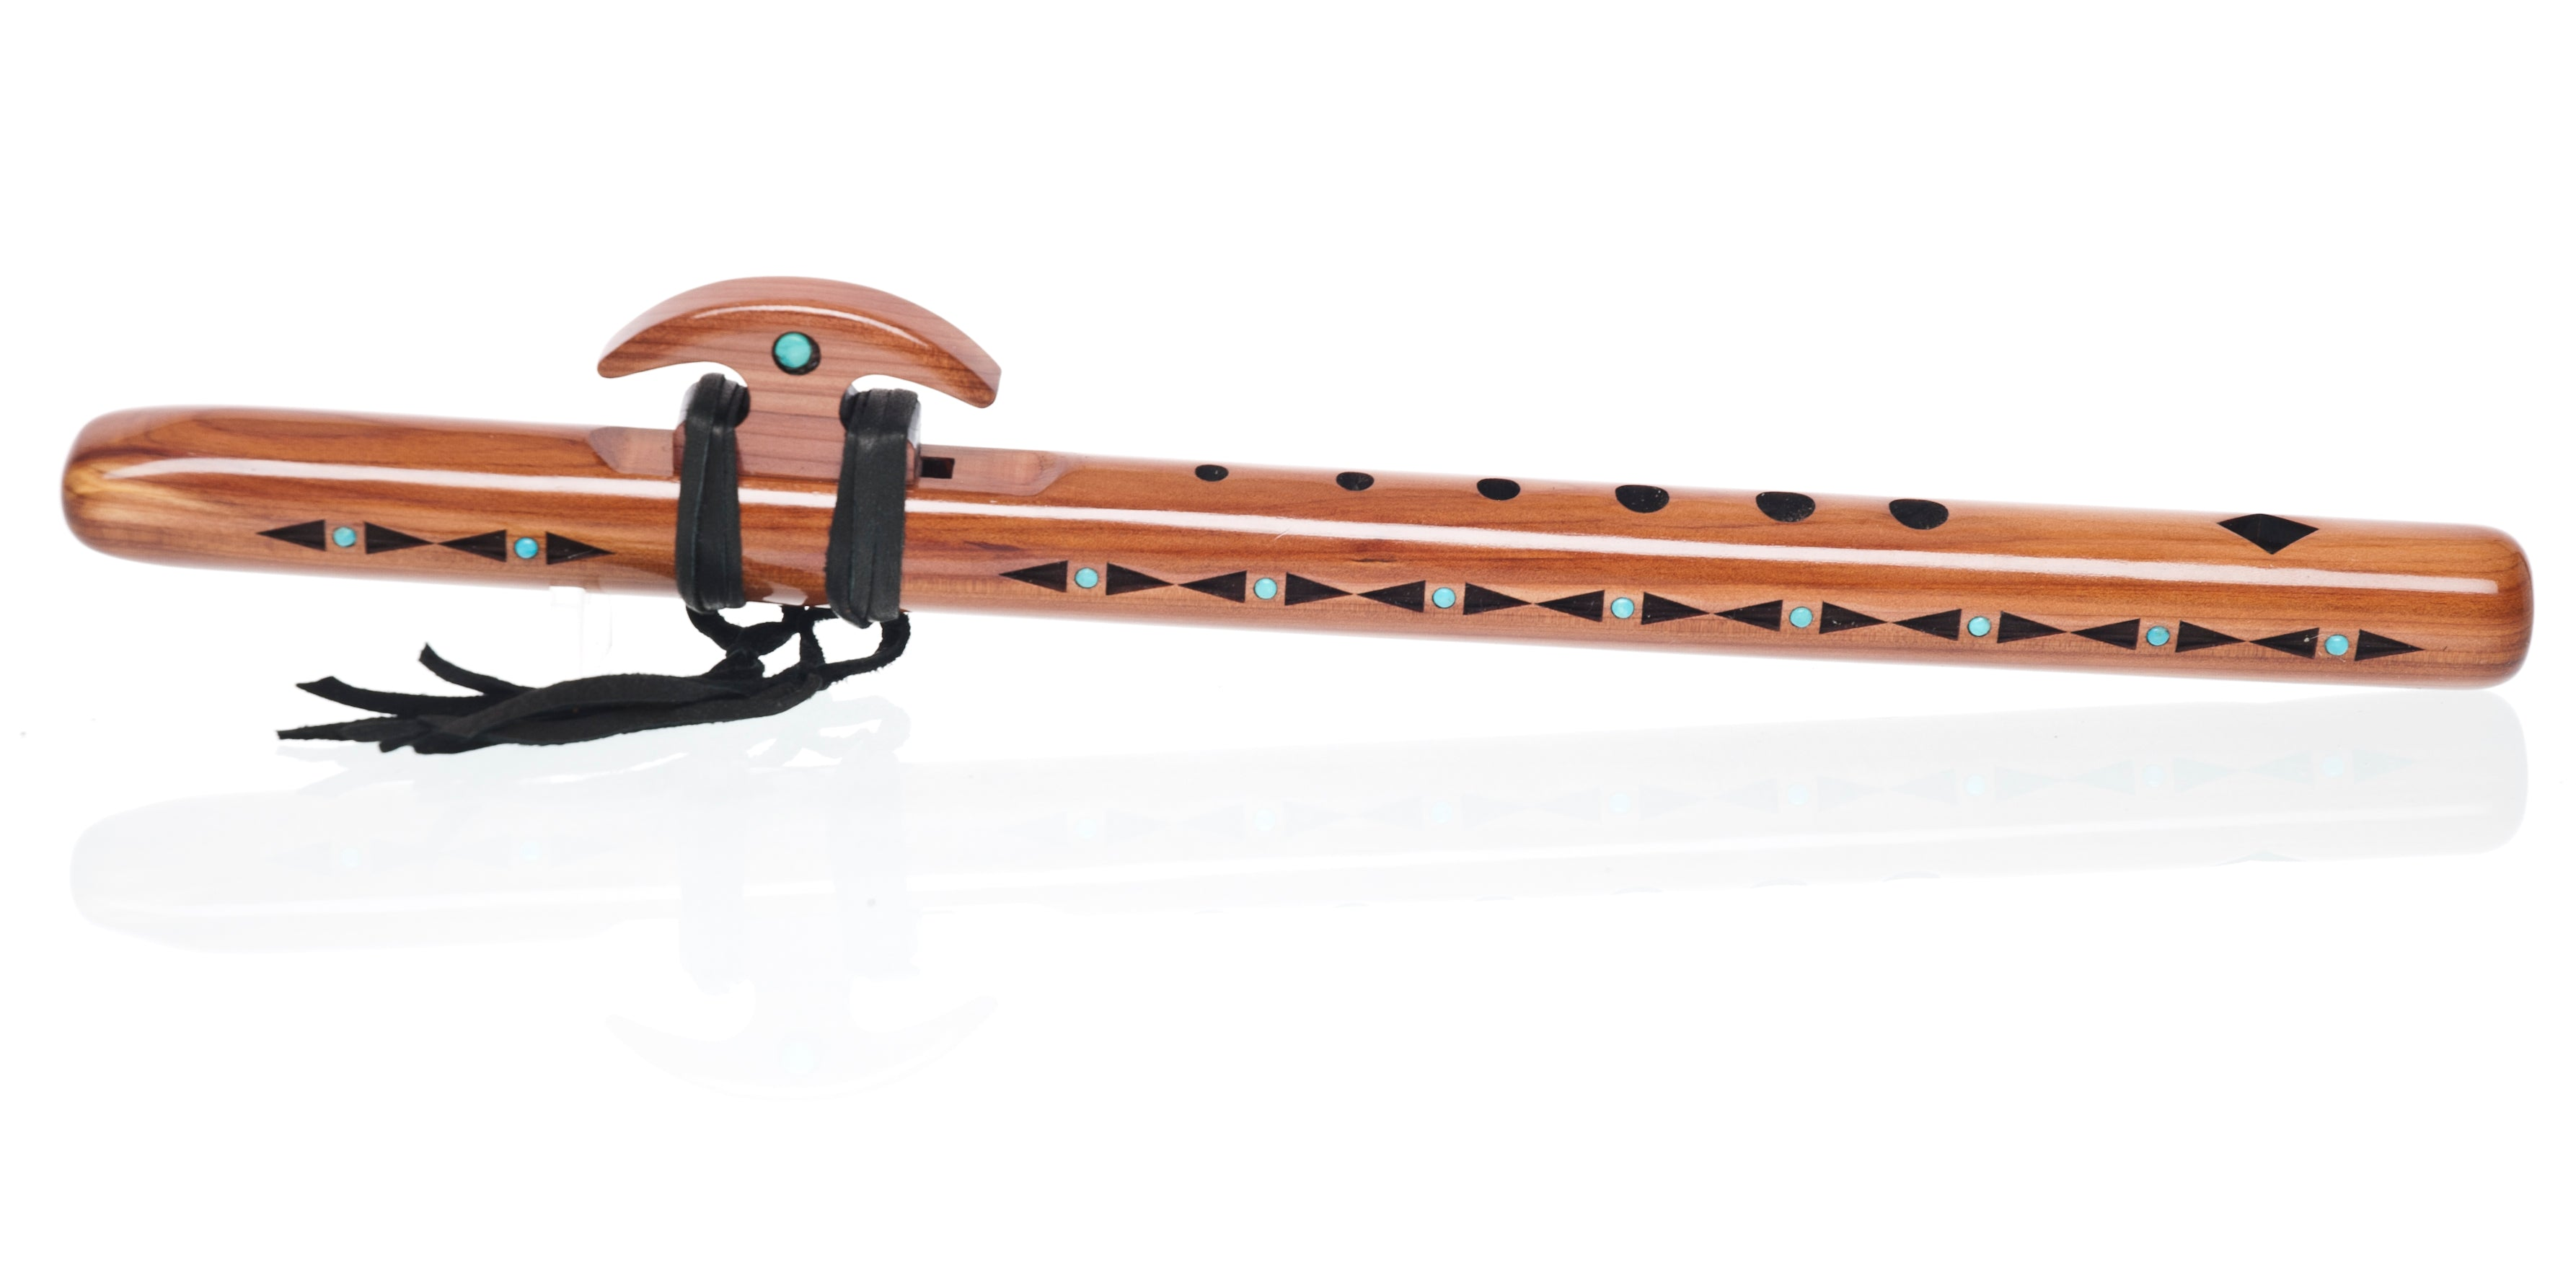 "Signature Kestrel ""high E"" - Aromatic Cedar w/ Turquoise Inlay"